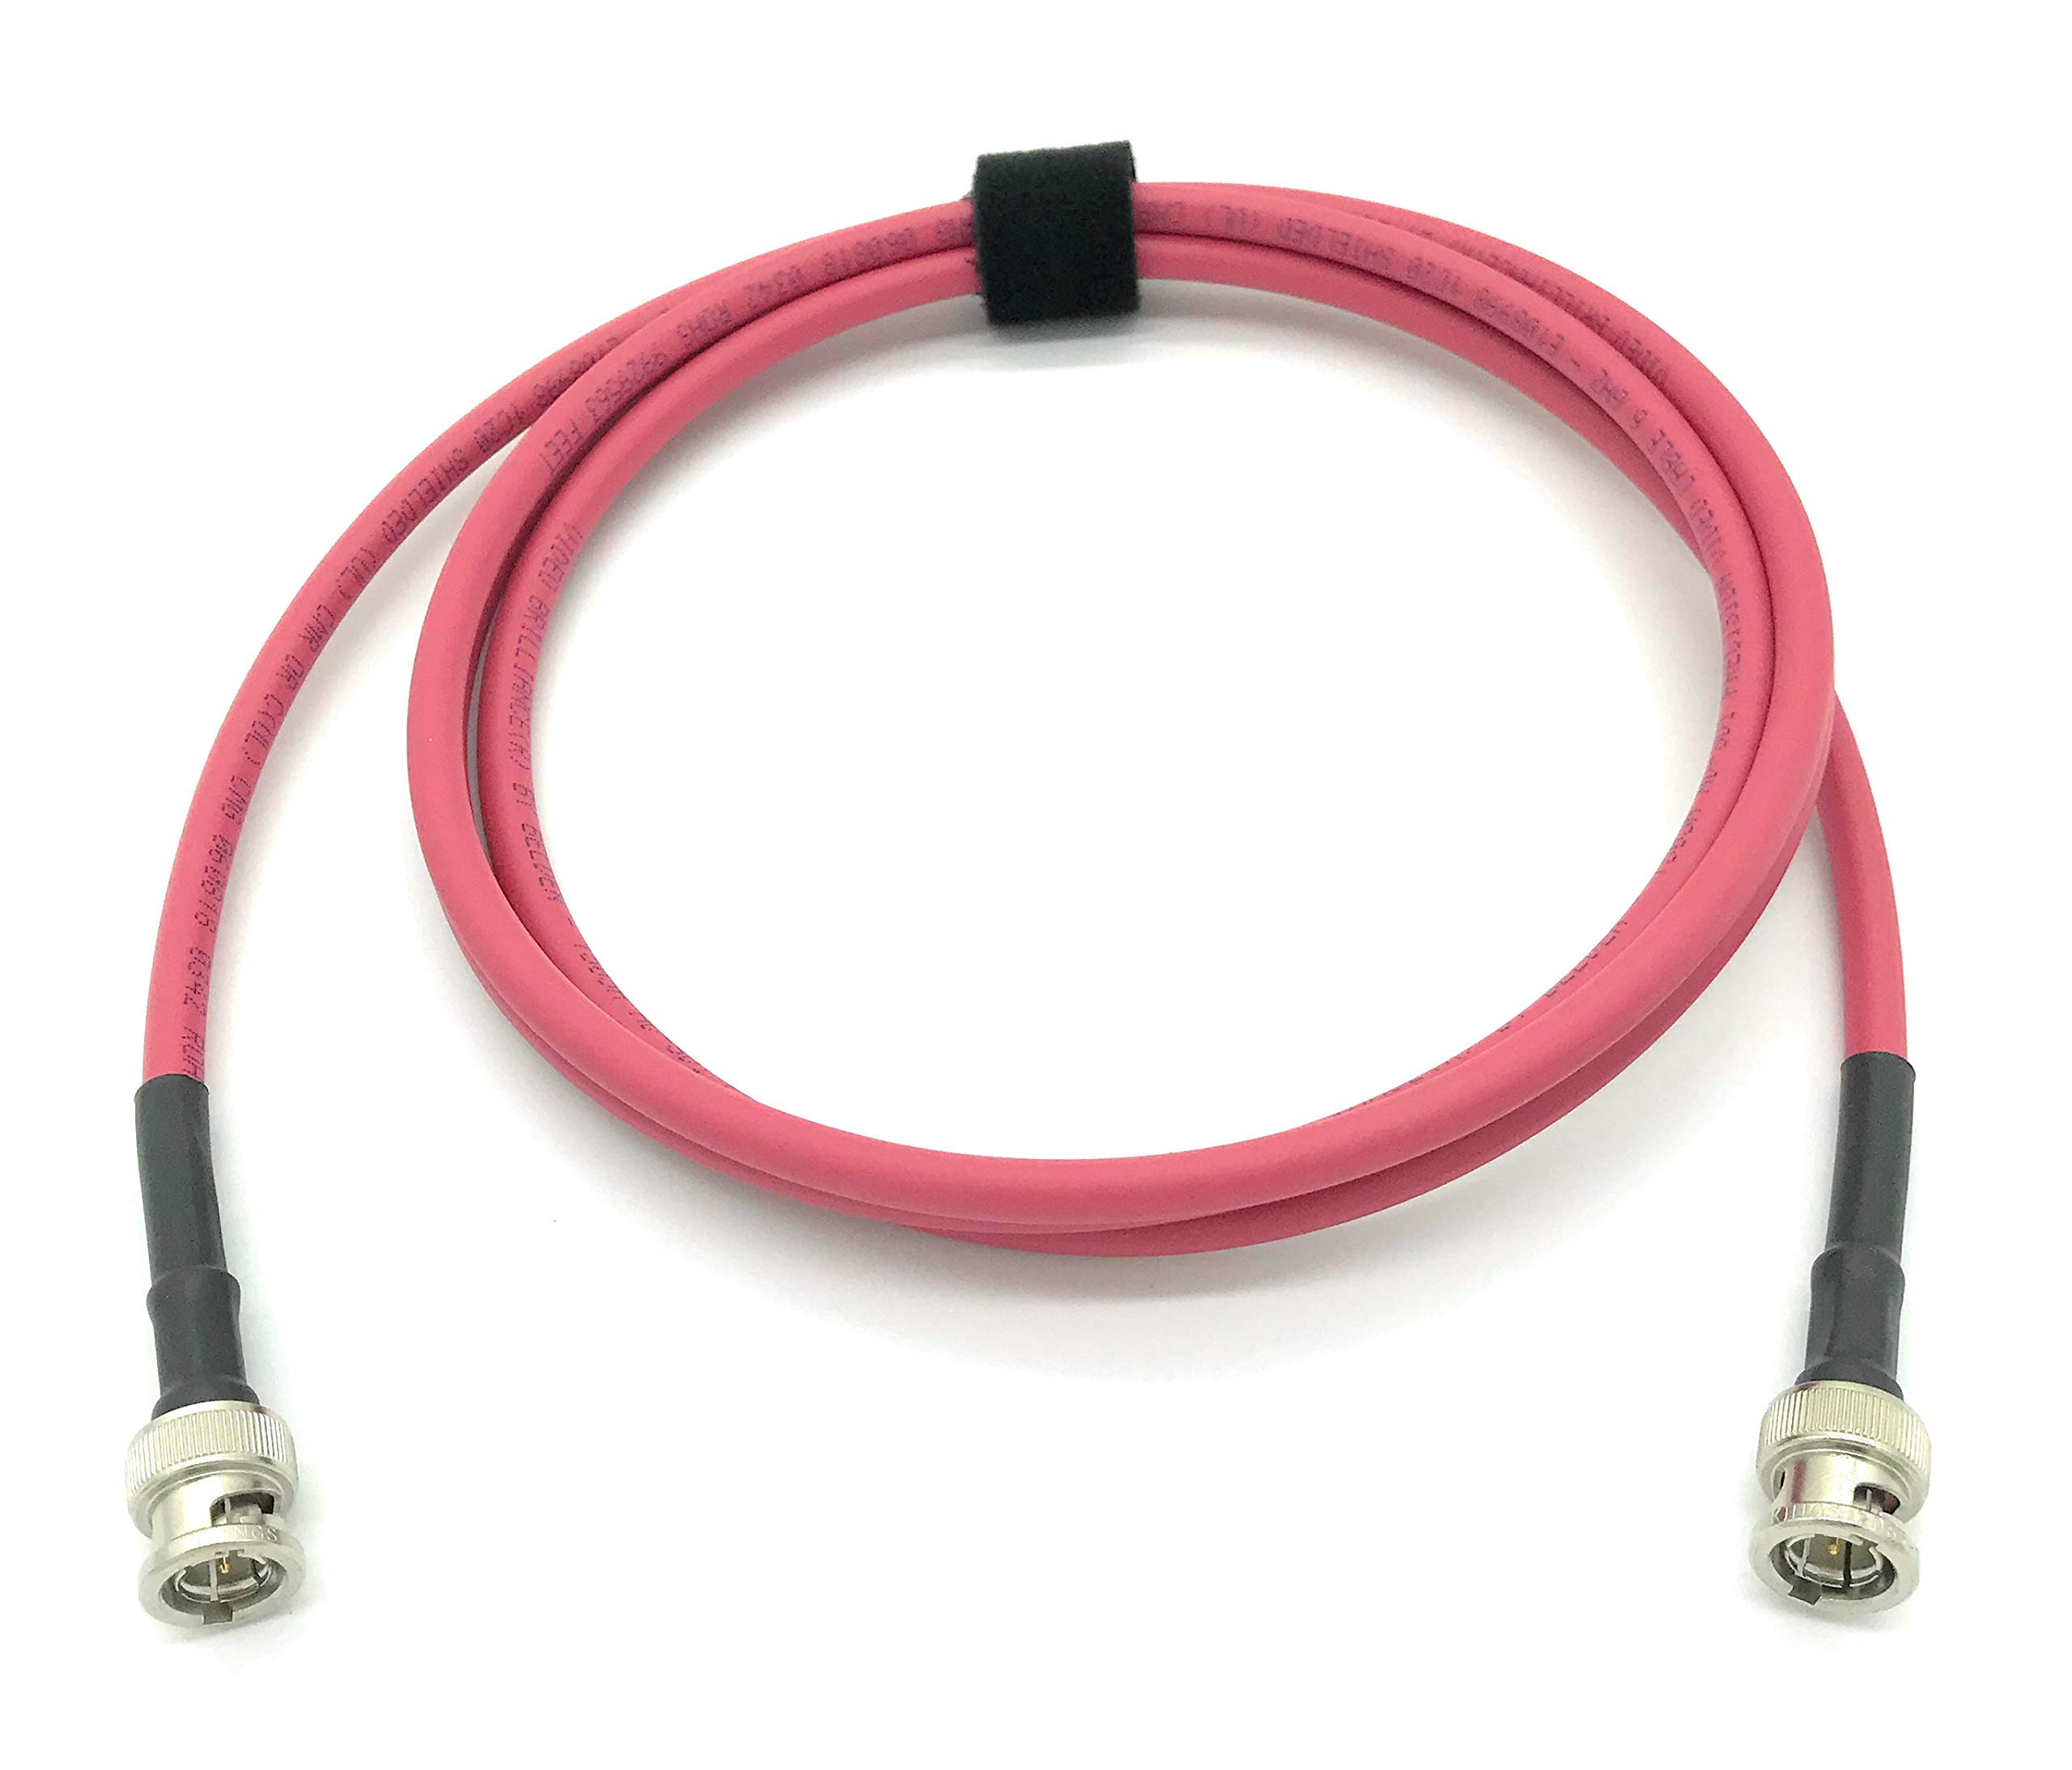 AV-Cables 3G/6G HD SDI BNC RG59 Cable Belden 1505A - Red (200ft) by AV-Cables